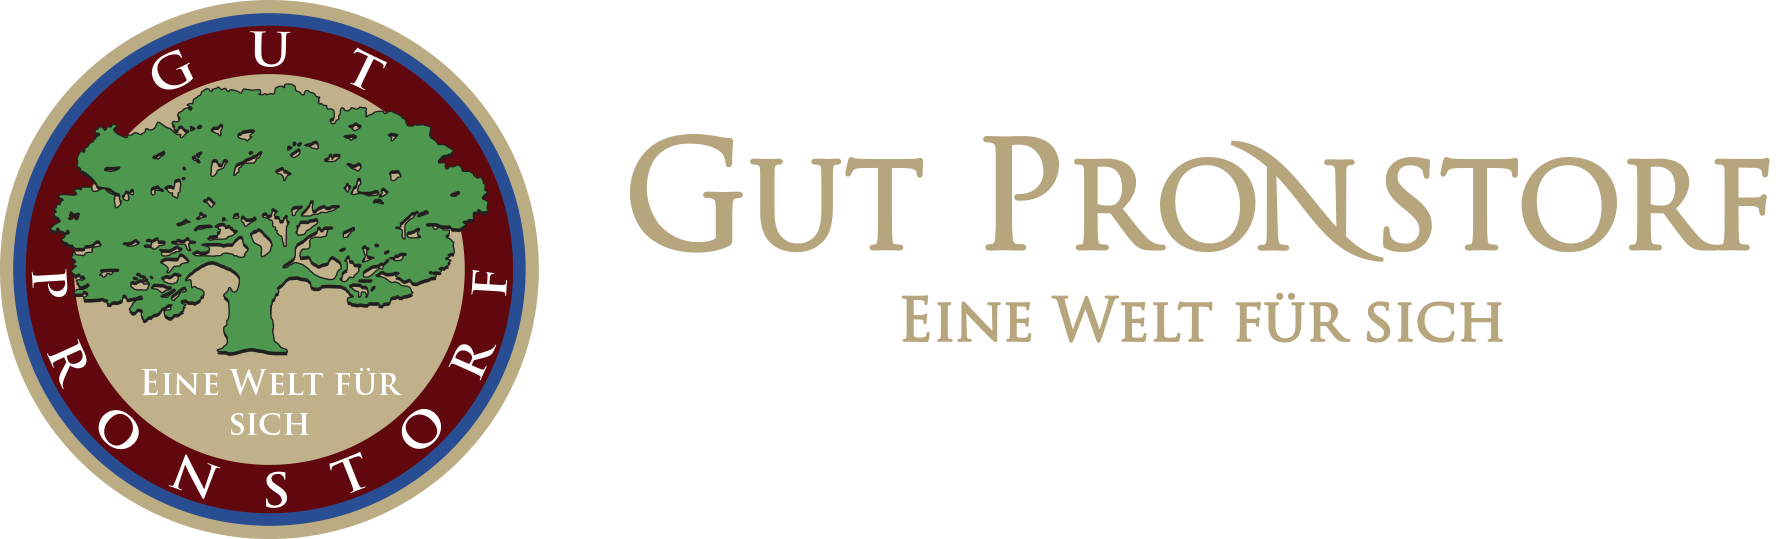 Gut Pronsdorf